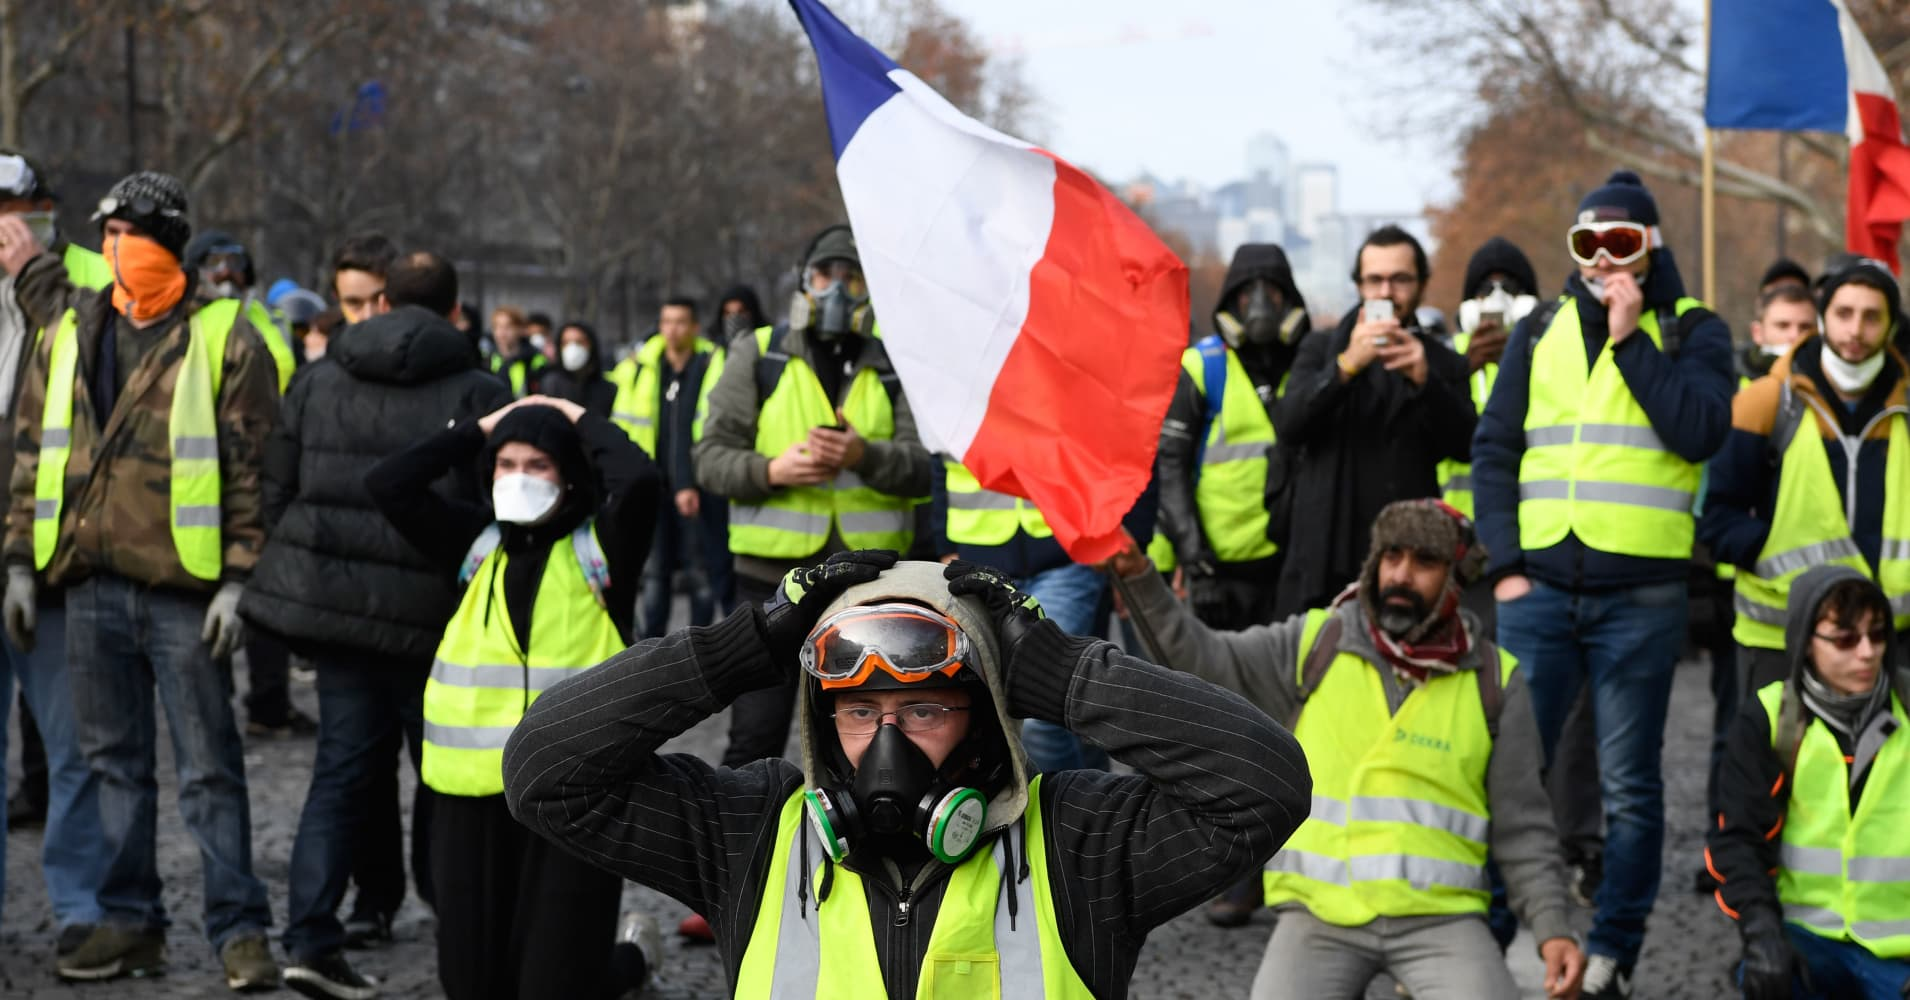 Violence at French yellow vest protests prompts new rallies